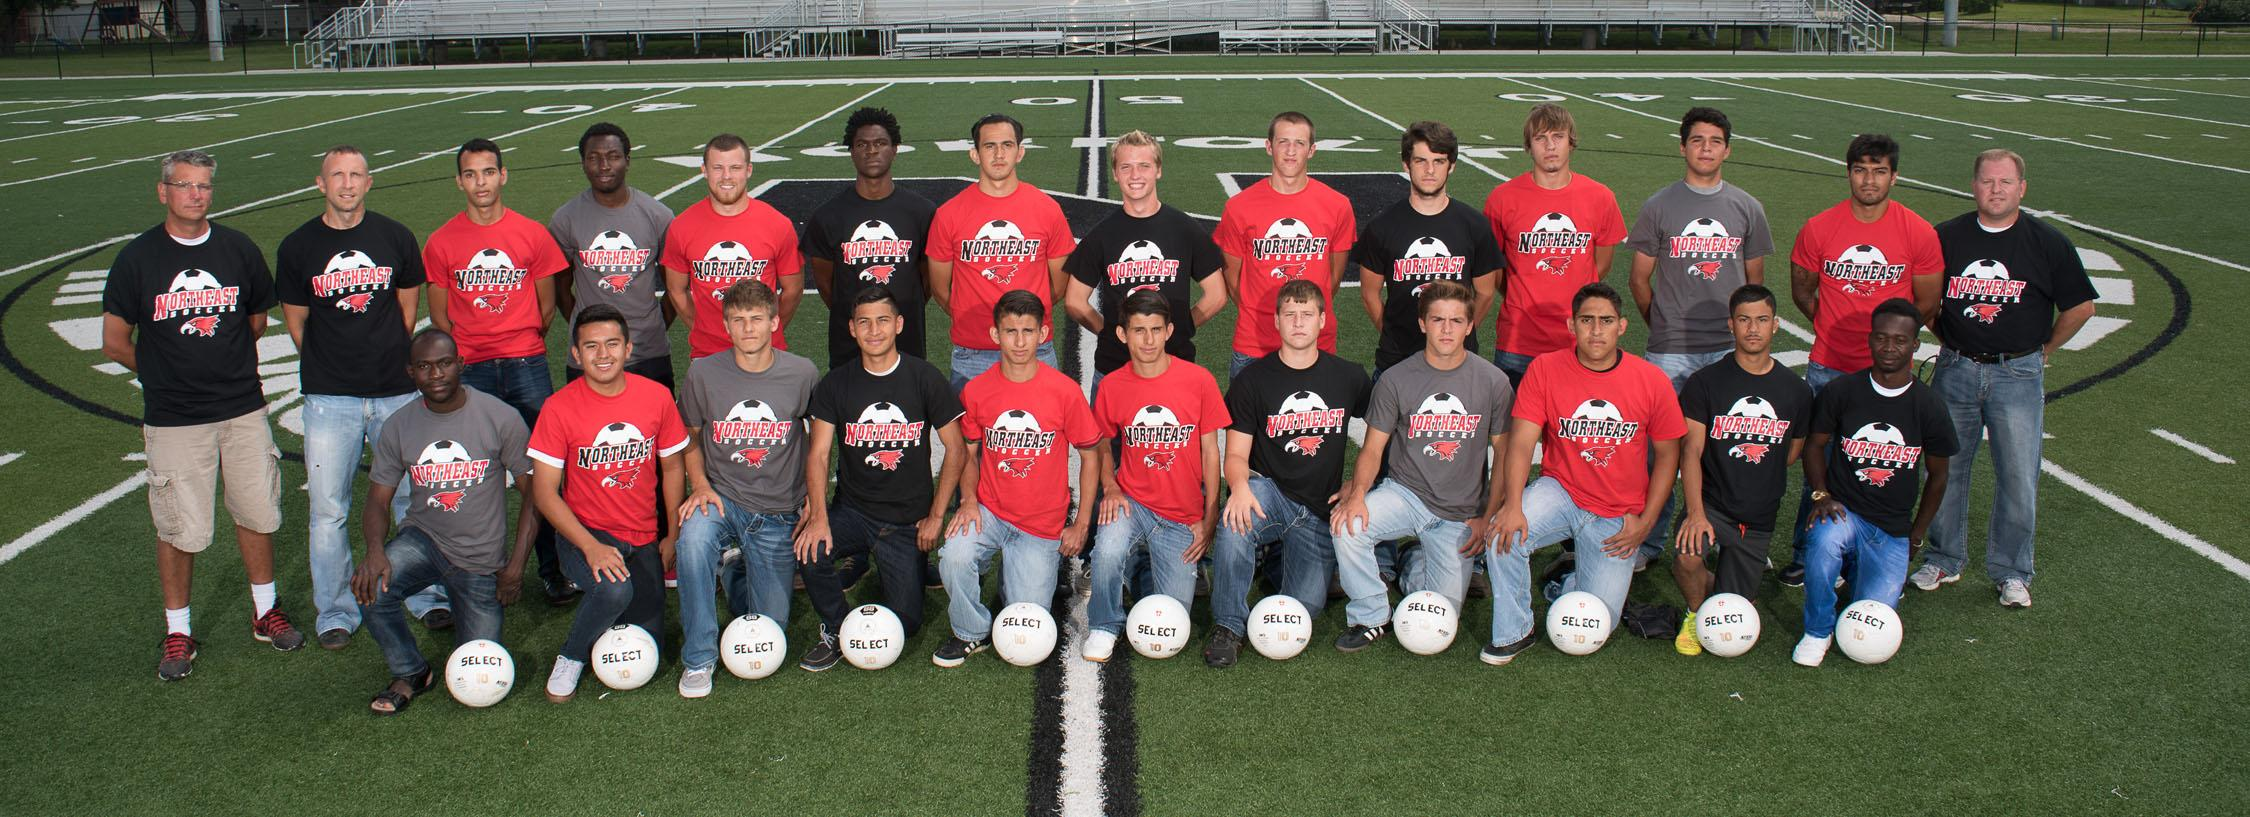 Members of the Northeast Community College men's soccer team include (front row, from left) Kobi Hyppolite, Miguel Andrade, Connor Herrod, Juan Alvarado, Jose Magana, Saul Magana, Marcus Holmberg, Brady Fister, Christian Chinchilla, Mark Murua, and Julien Koala. Back row (from left) Tom Beutler, assistant coach, Chad Miller, head coach, Waleed Kadhim, Kevin Koffi, Mitchell Plance, Geremy Dable, Gustavo Magana, Justin Sullivan, Ryan Olmer, Clayton Patton, Taylor Thayer, Alex Rojas, Mario Cortez, and Shawn Tillotson, assistant coach. Not pictured: Fernando Lopez, Christian Zazueta and Nathan Broekemeier. (Courtesy Photo)